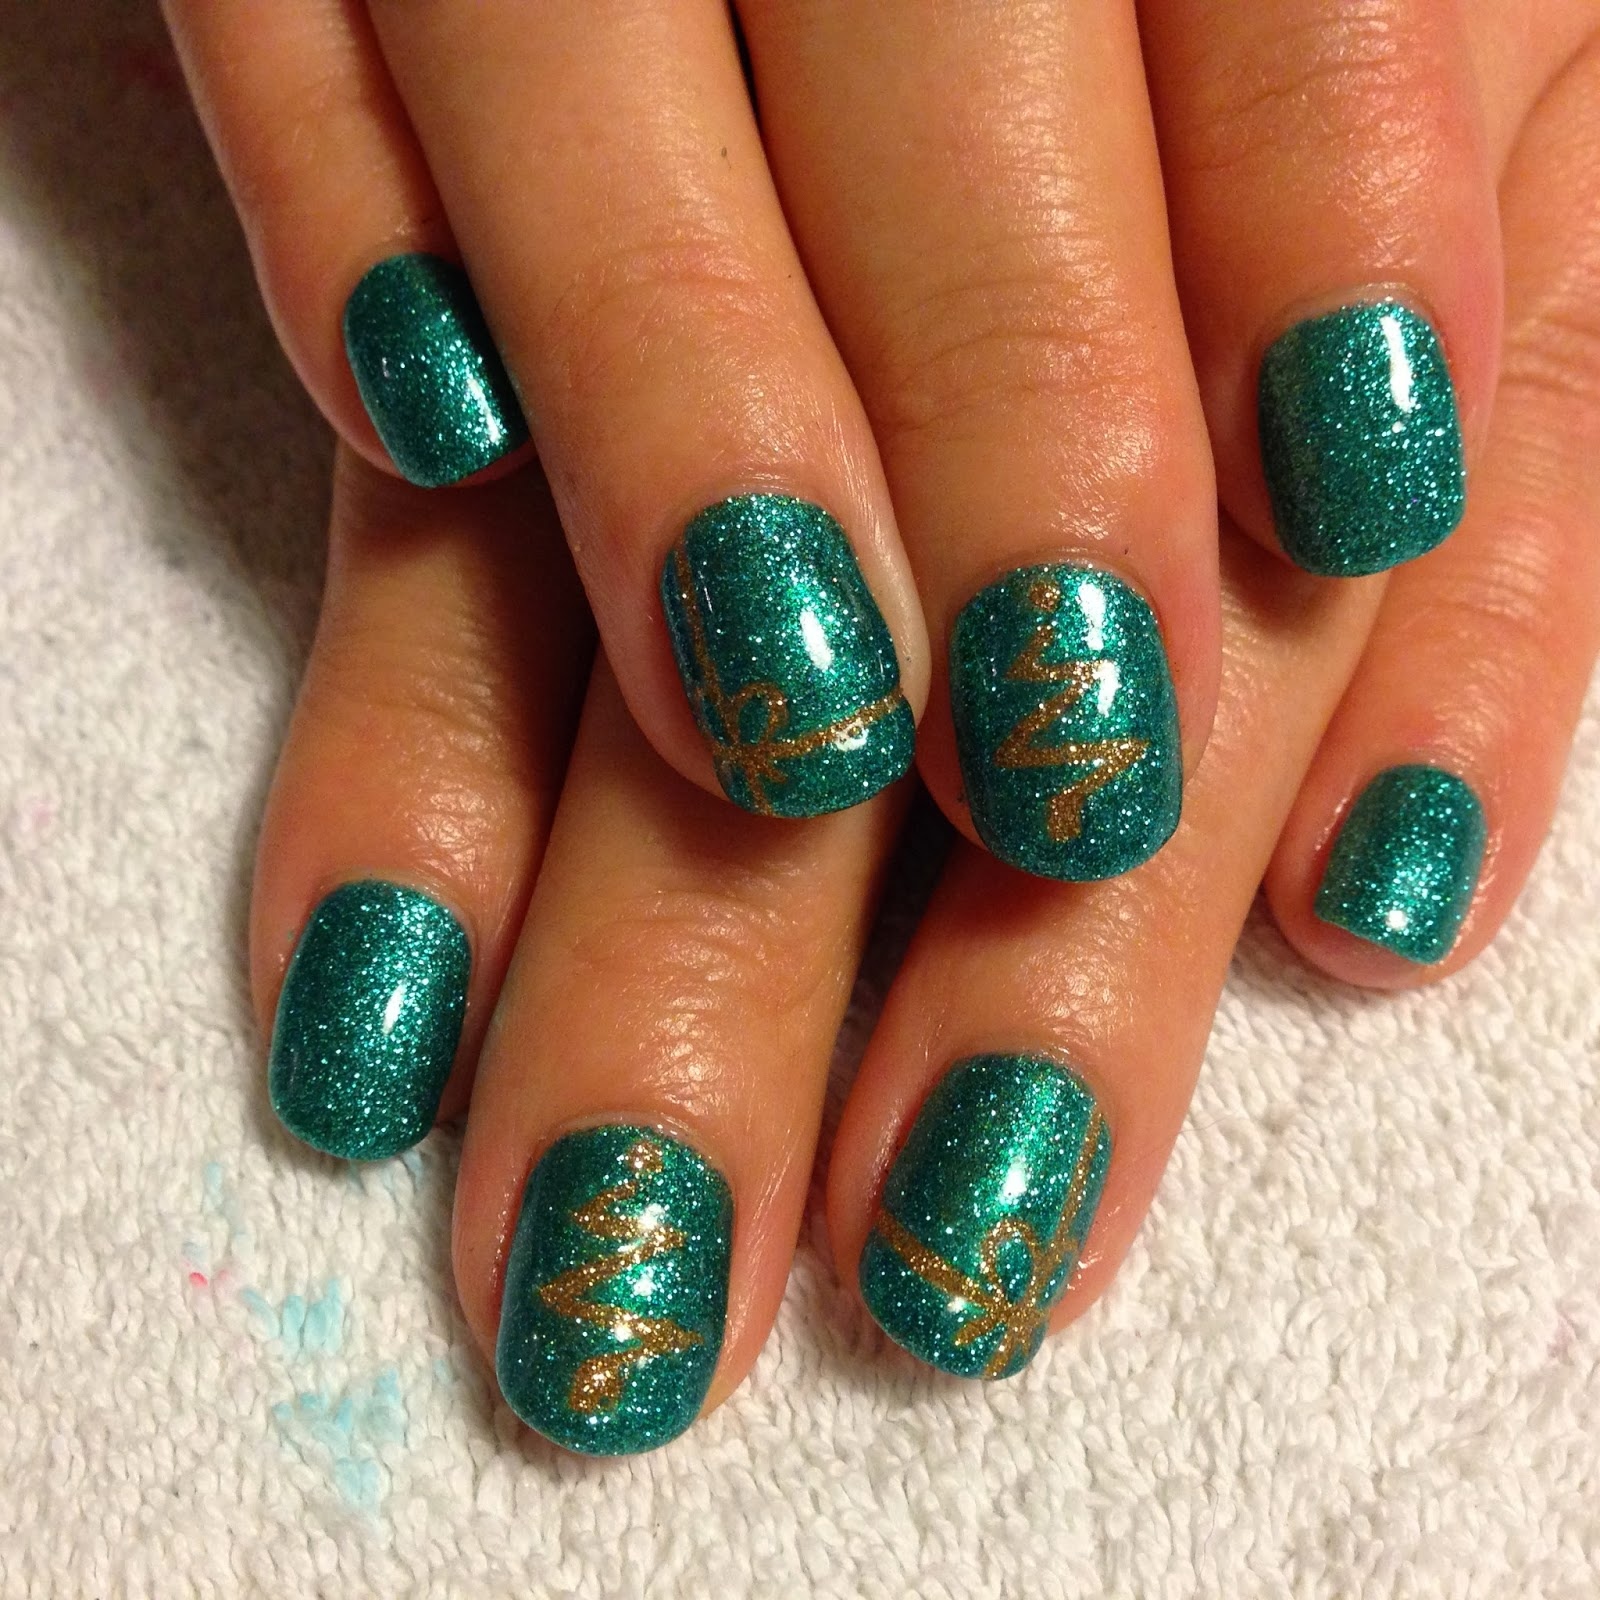 Brush up and polish up cnd shellac christmas nail art 6 cnd shellac christmas nail art 6 turquoise twinkle prinsesfo Image collections